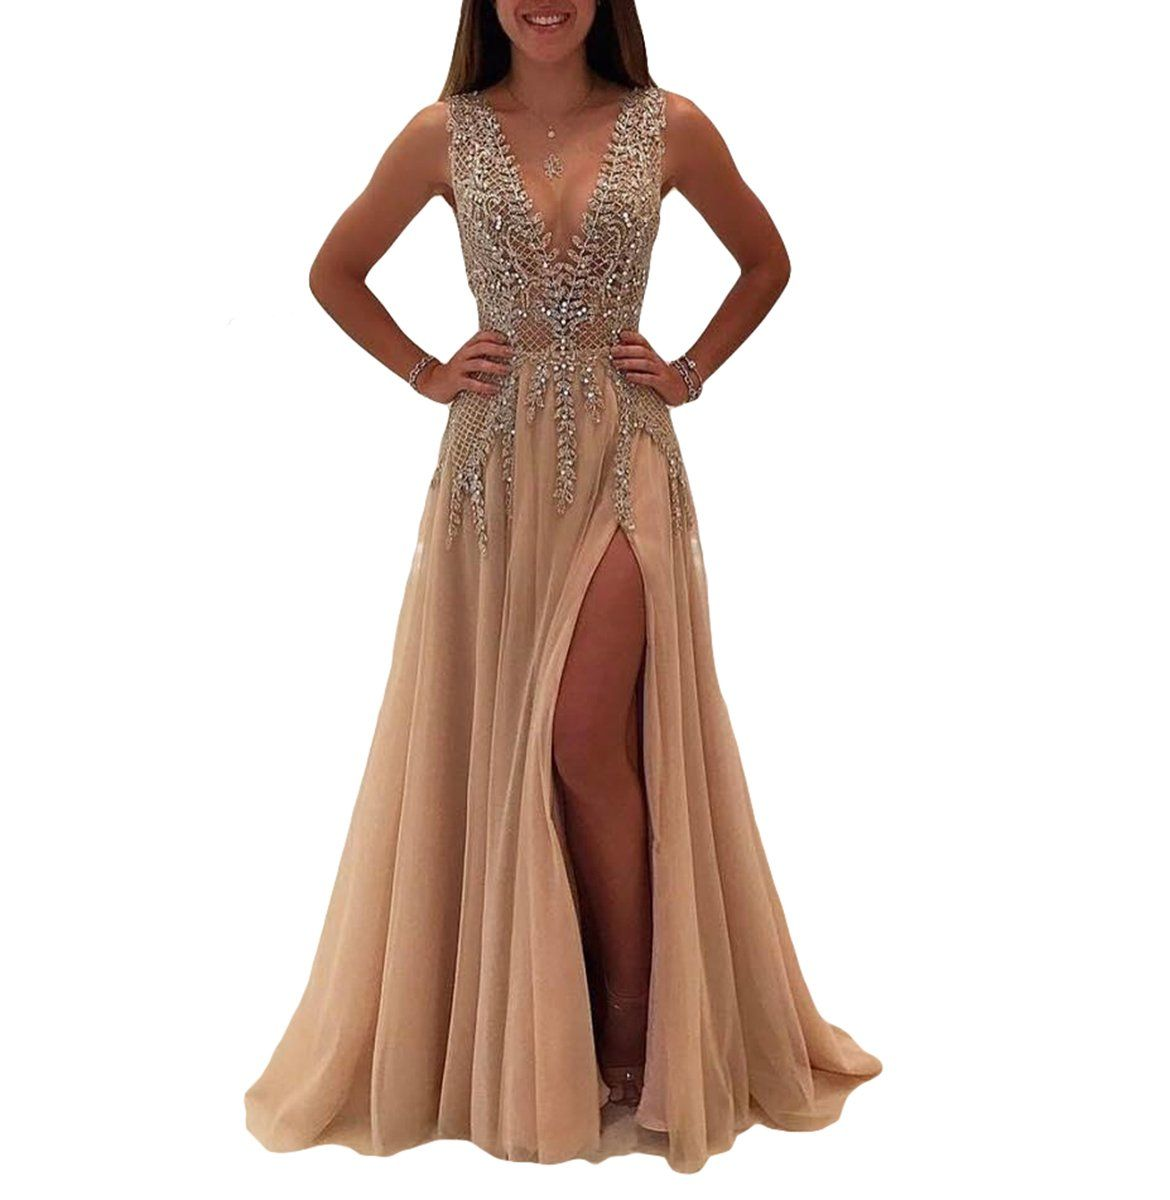 Mre homme long luxury beaded evening prom dresses with slit